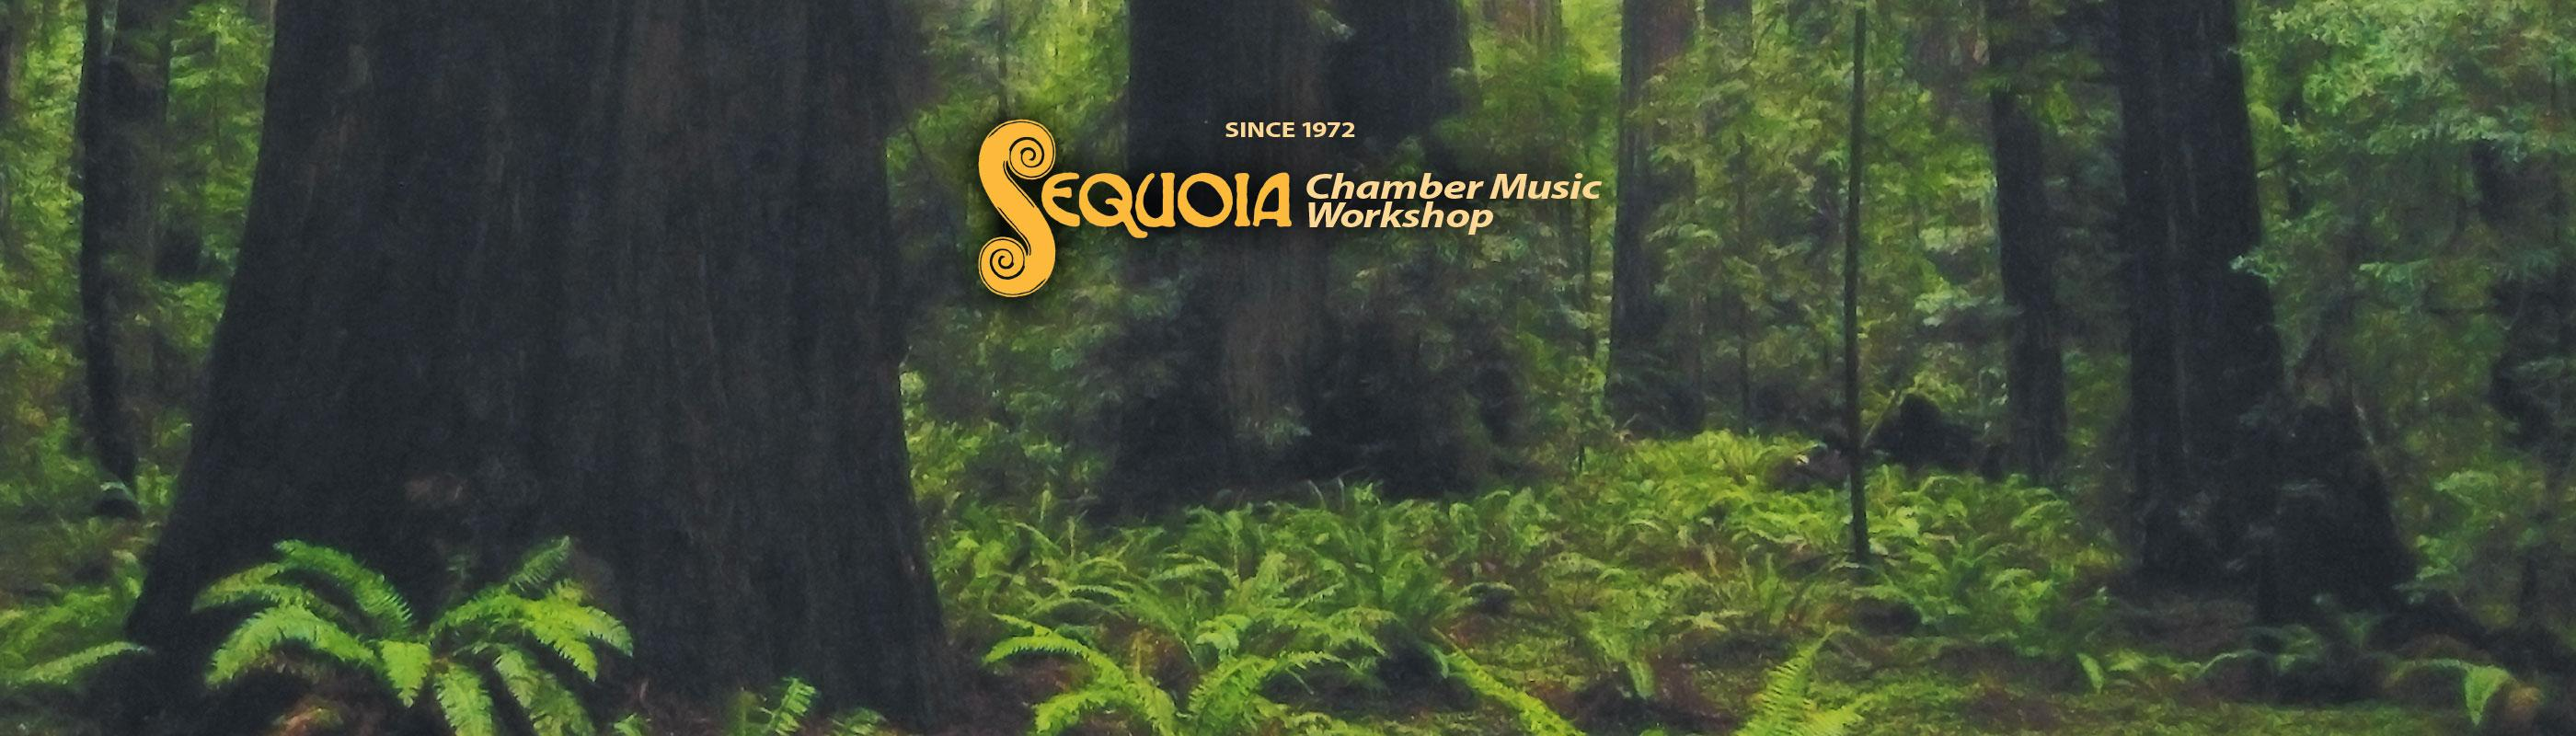 Sequoia Chamber Music Workshop - Since 1972